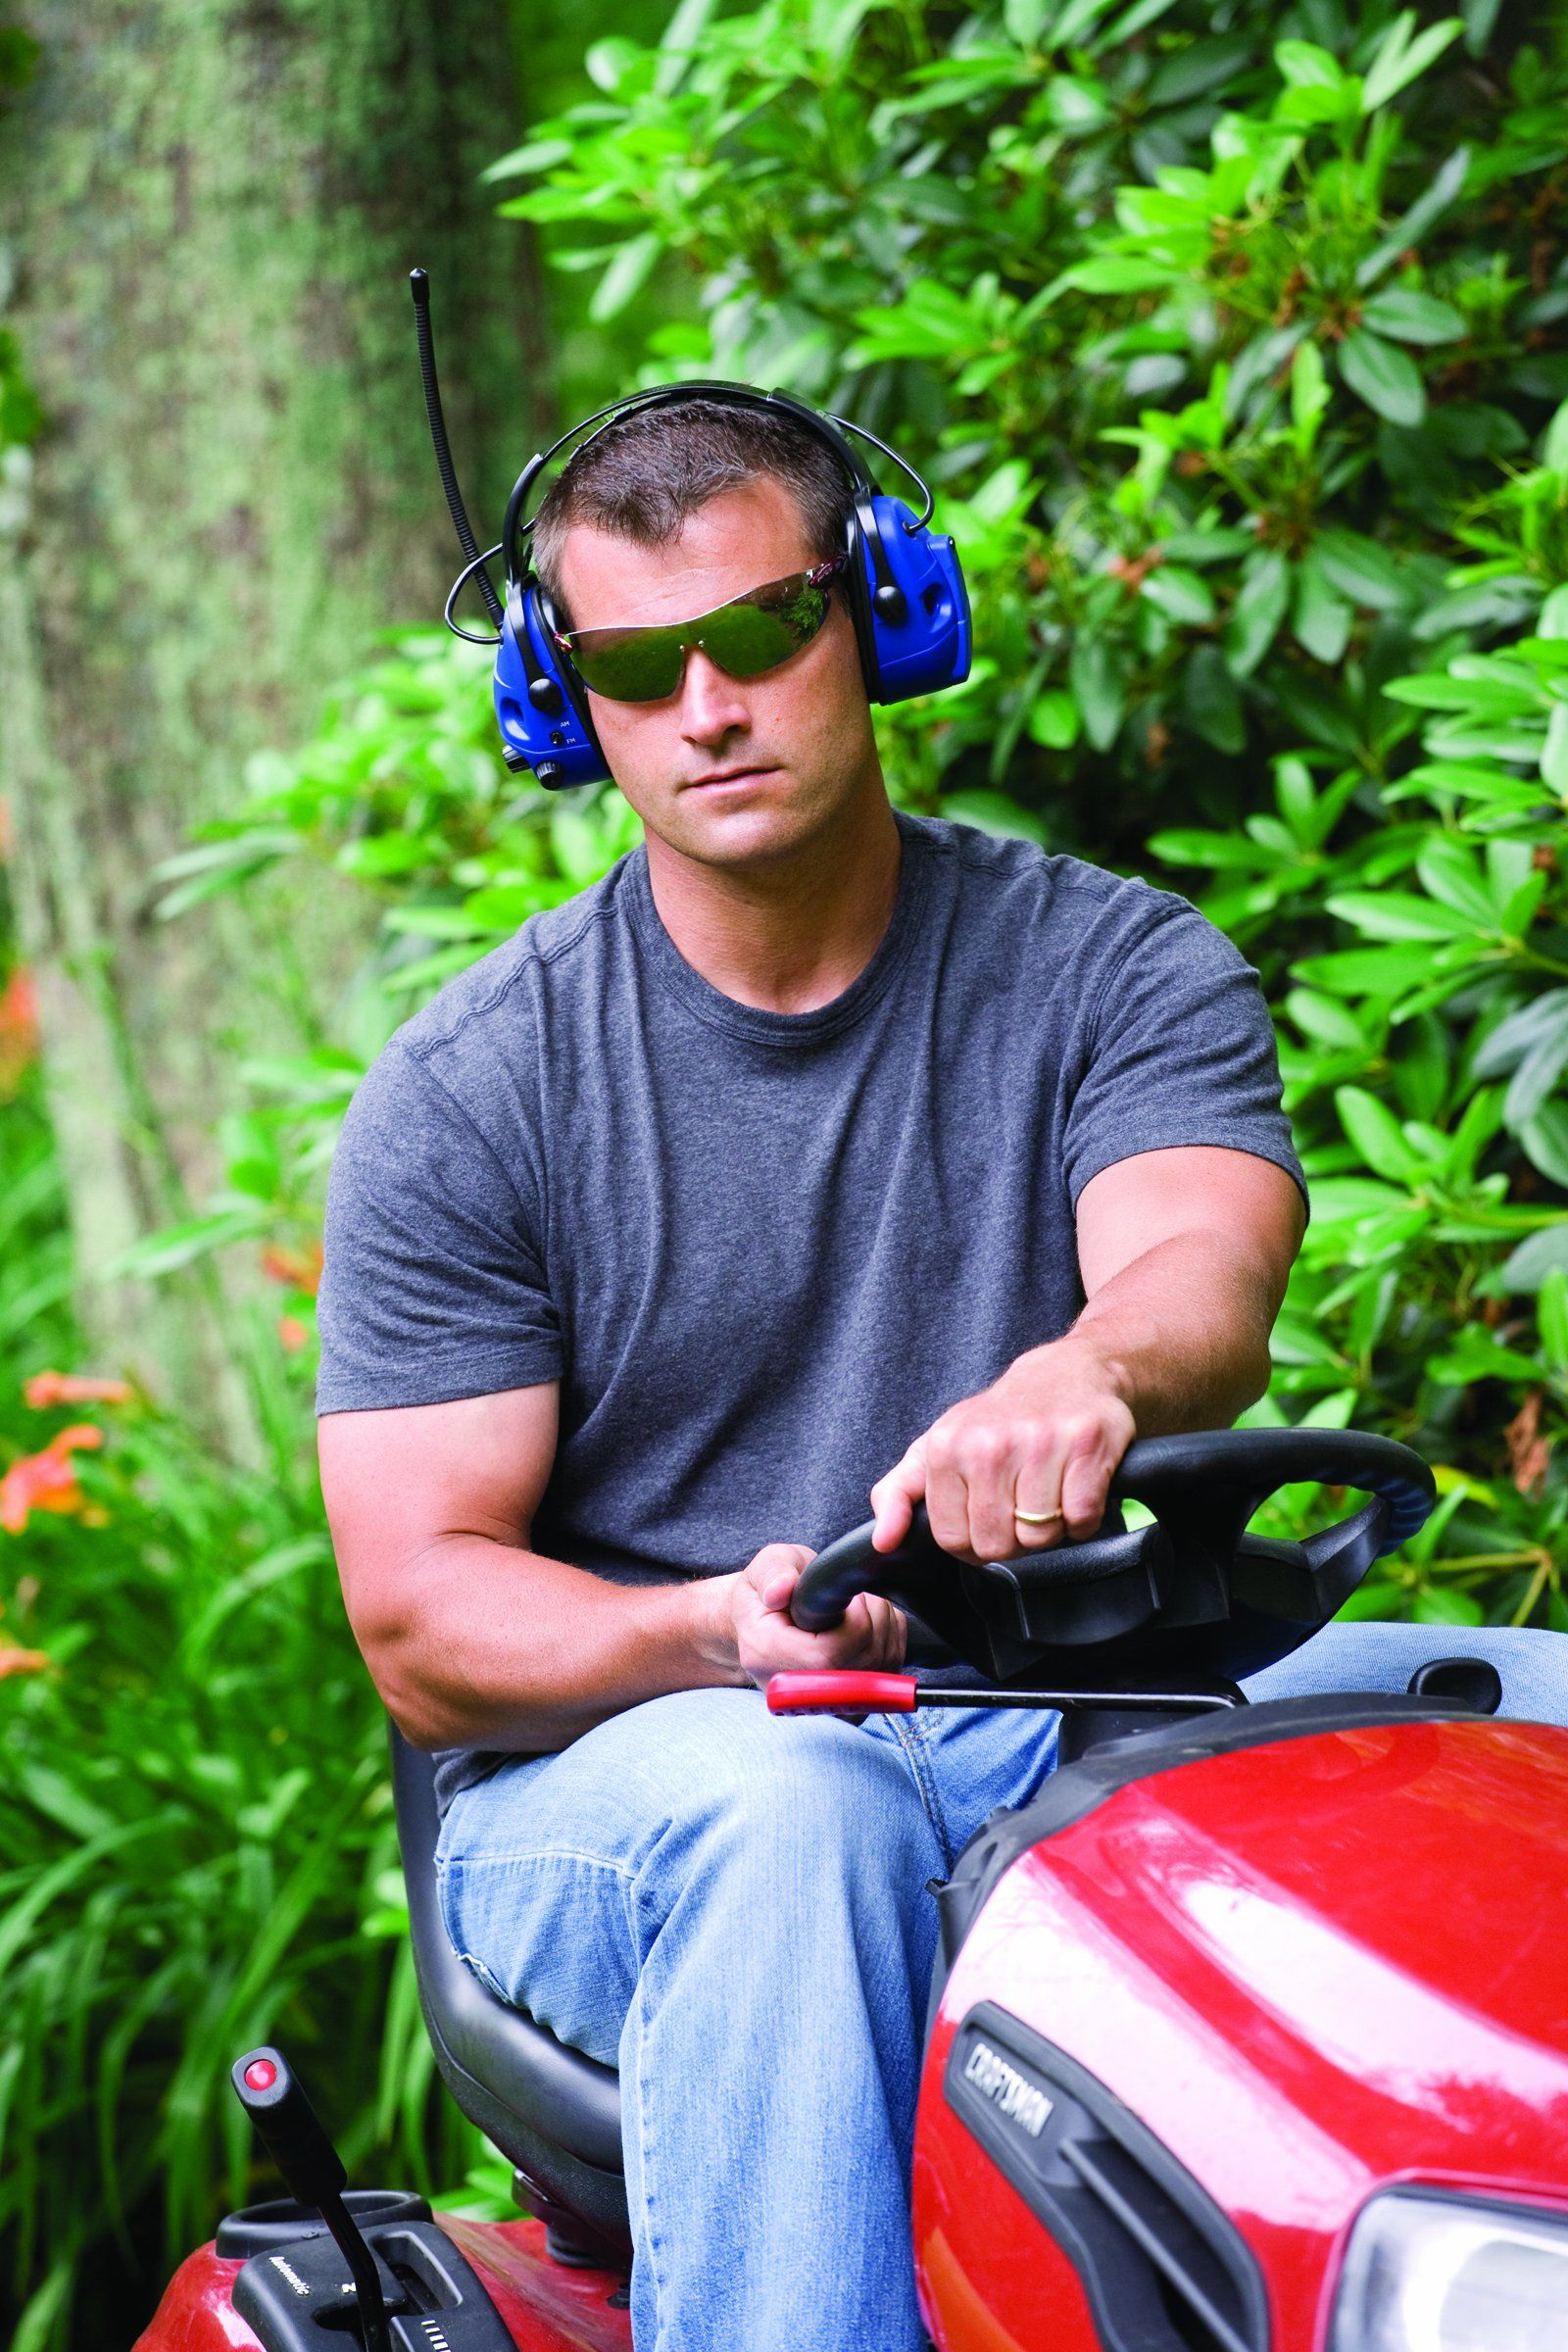 As Fun Listening To The Lawn Mower Is Why Not Protect Your Ears And